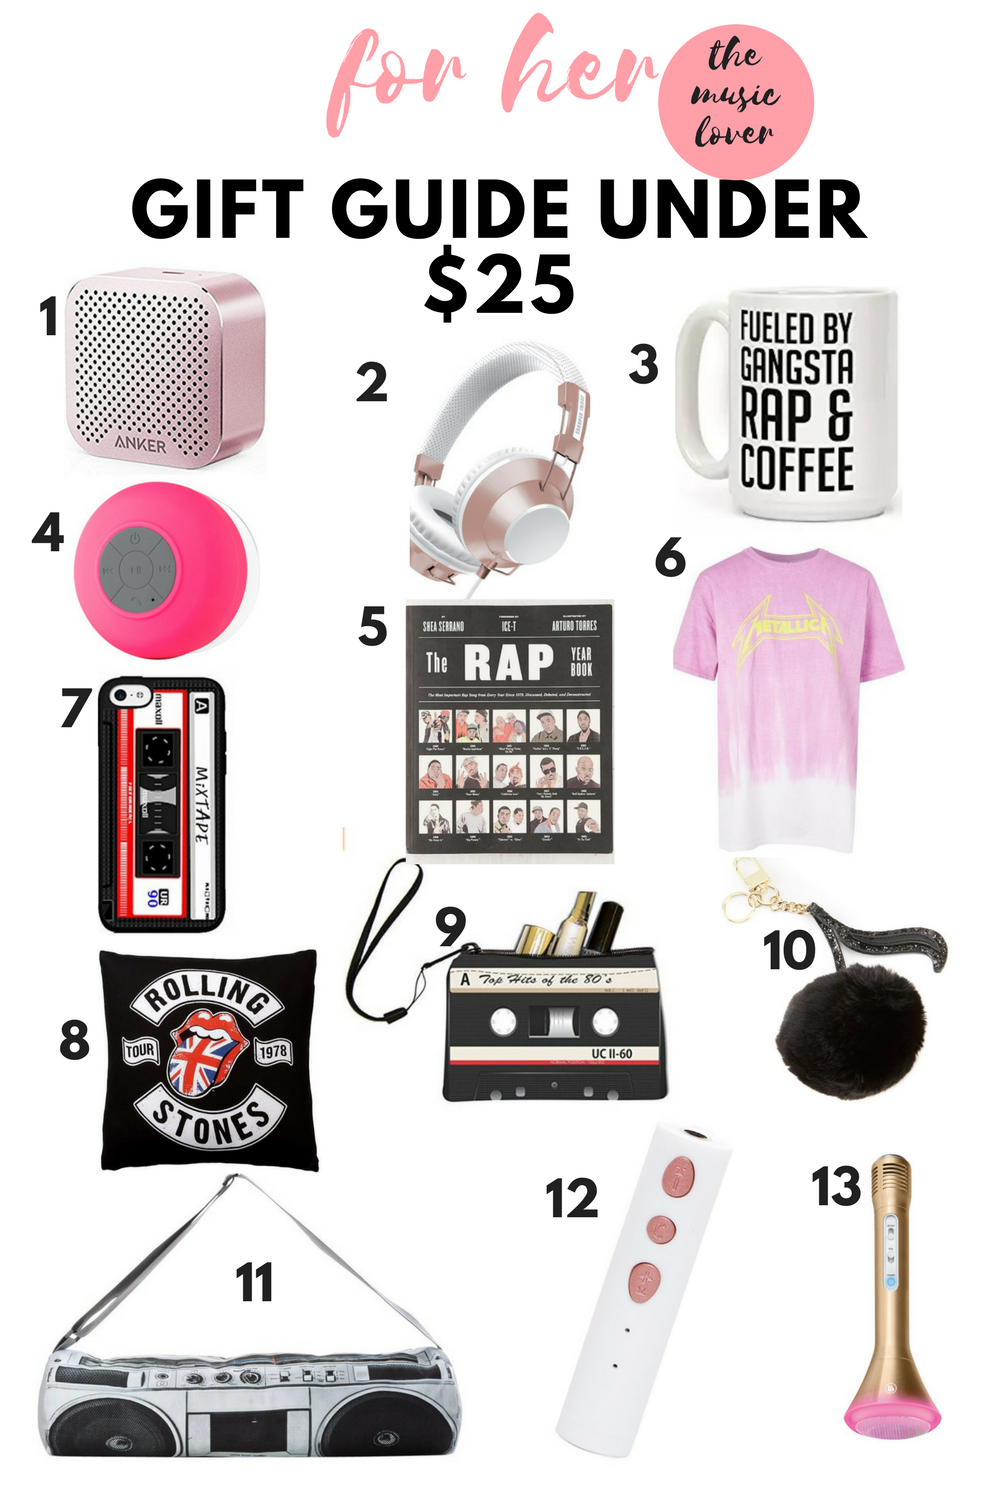 gift guide under $25 for her personality type - the music lover